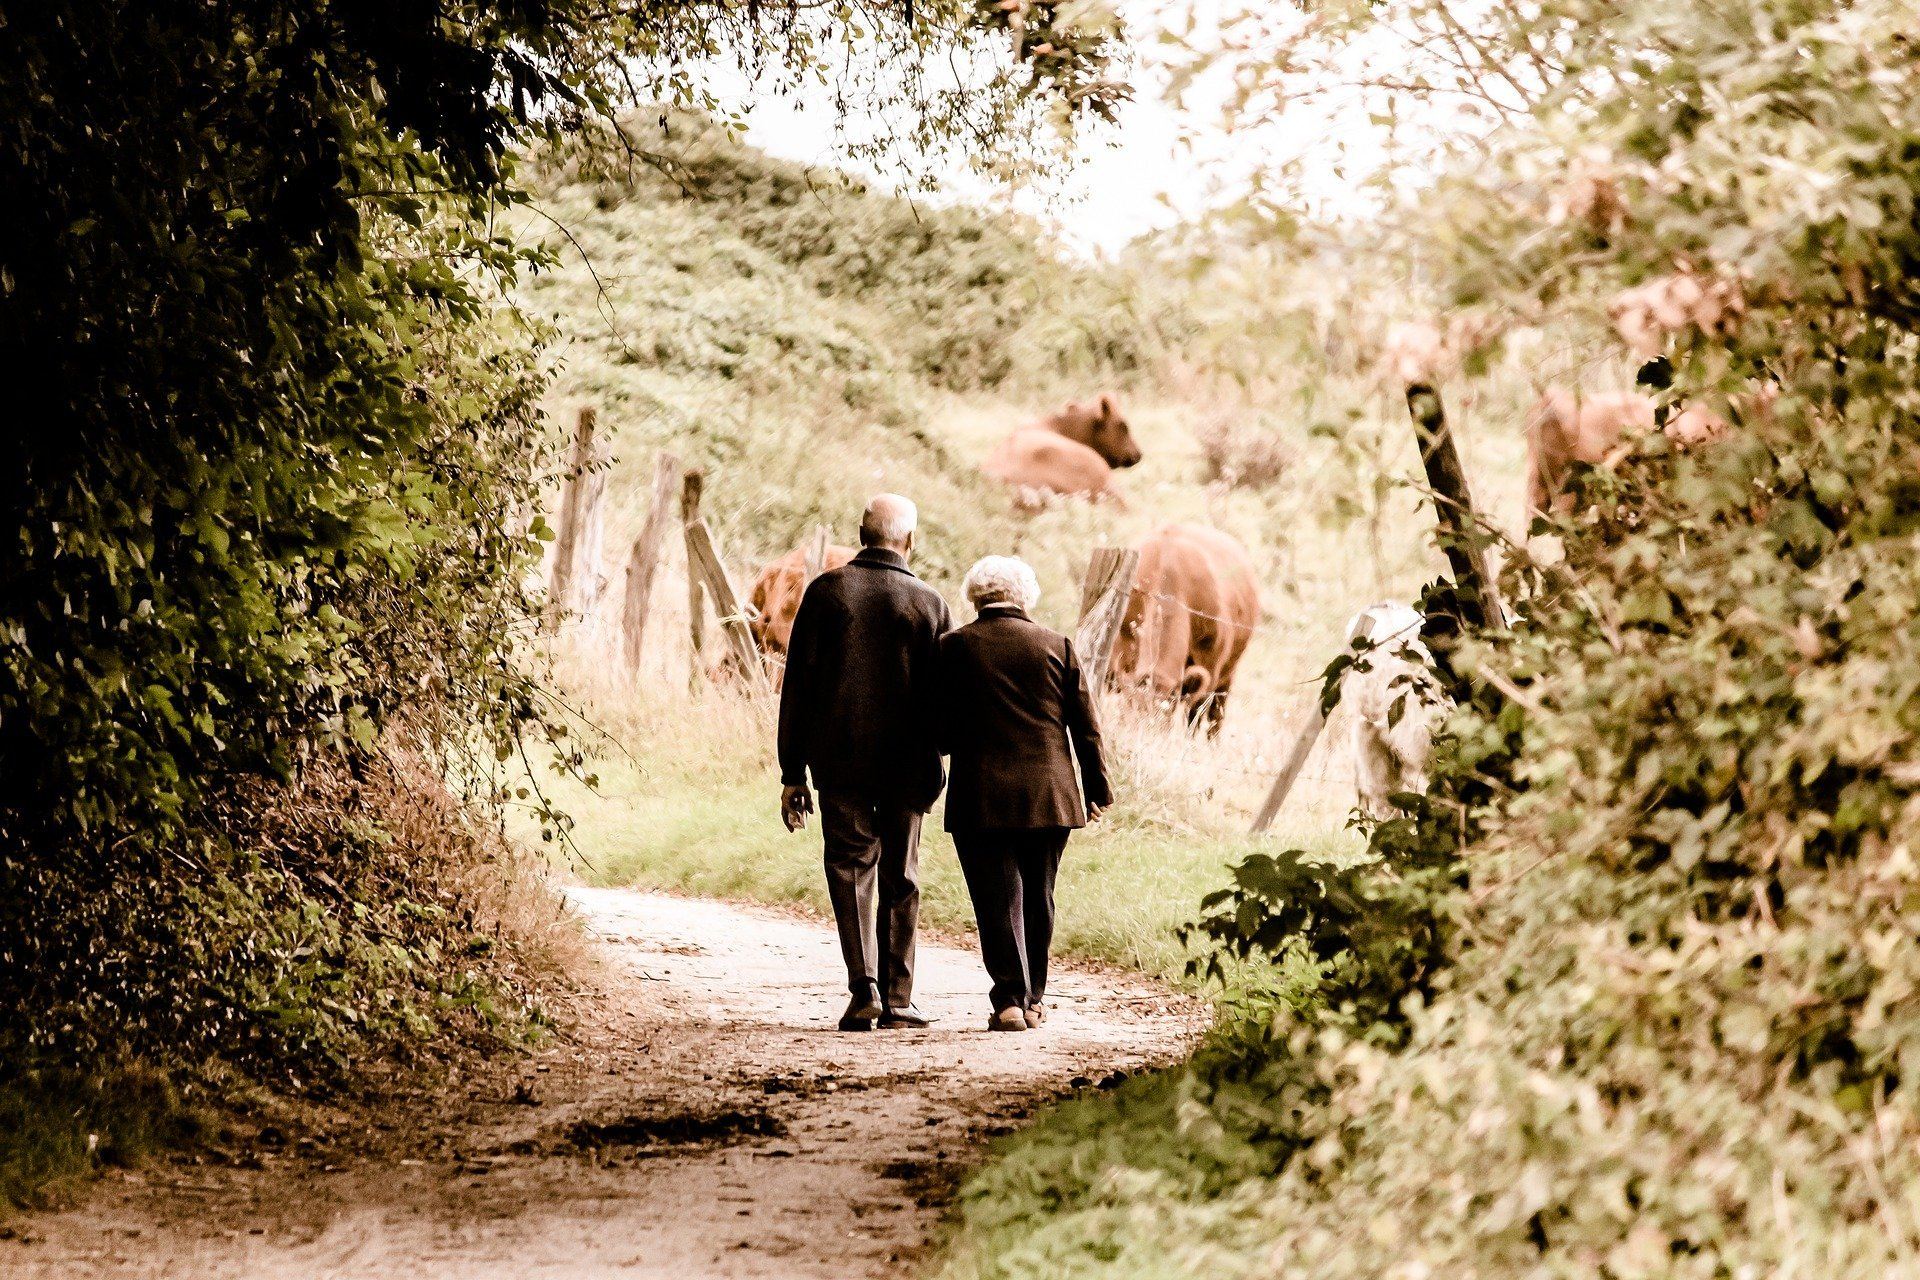 An elderly couple out on a walk in nature. | Source: Pixabay.